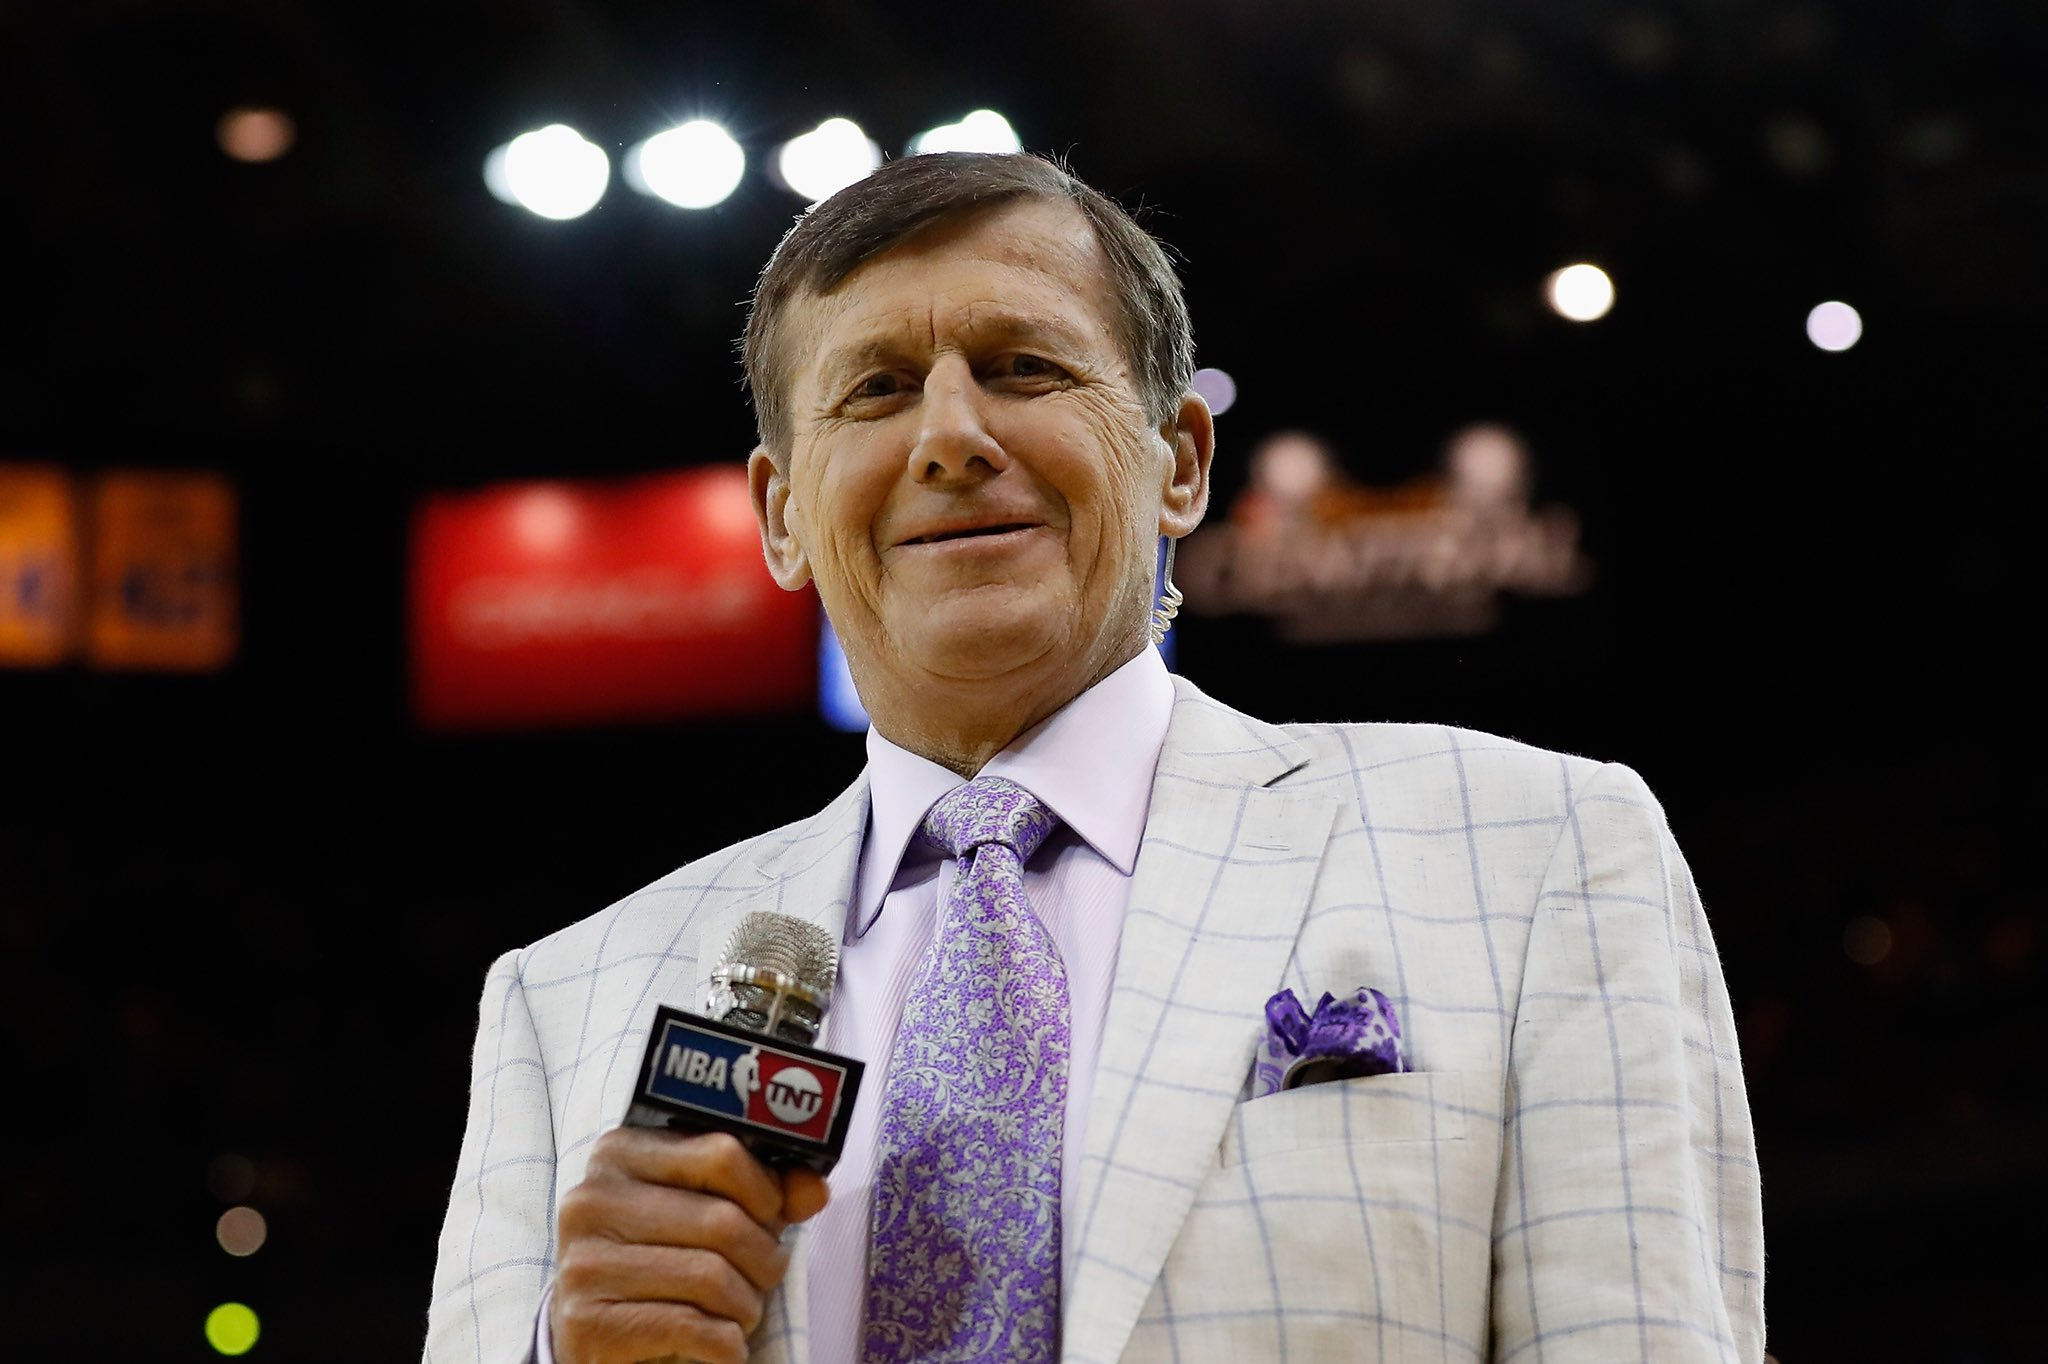 Today, we are all #SagerStrong https://t.co/DBOym8WvRS